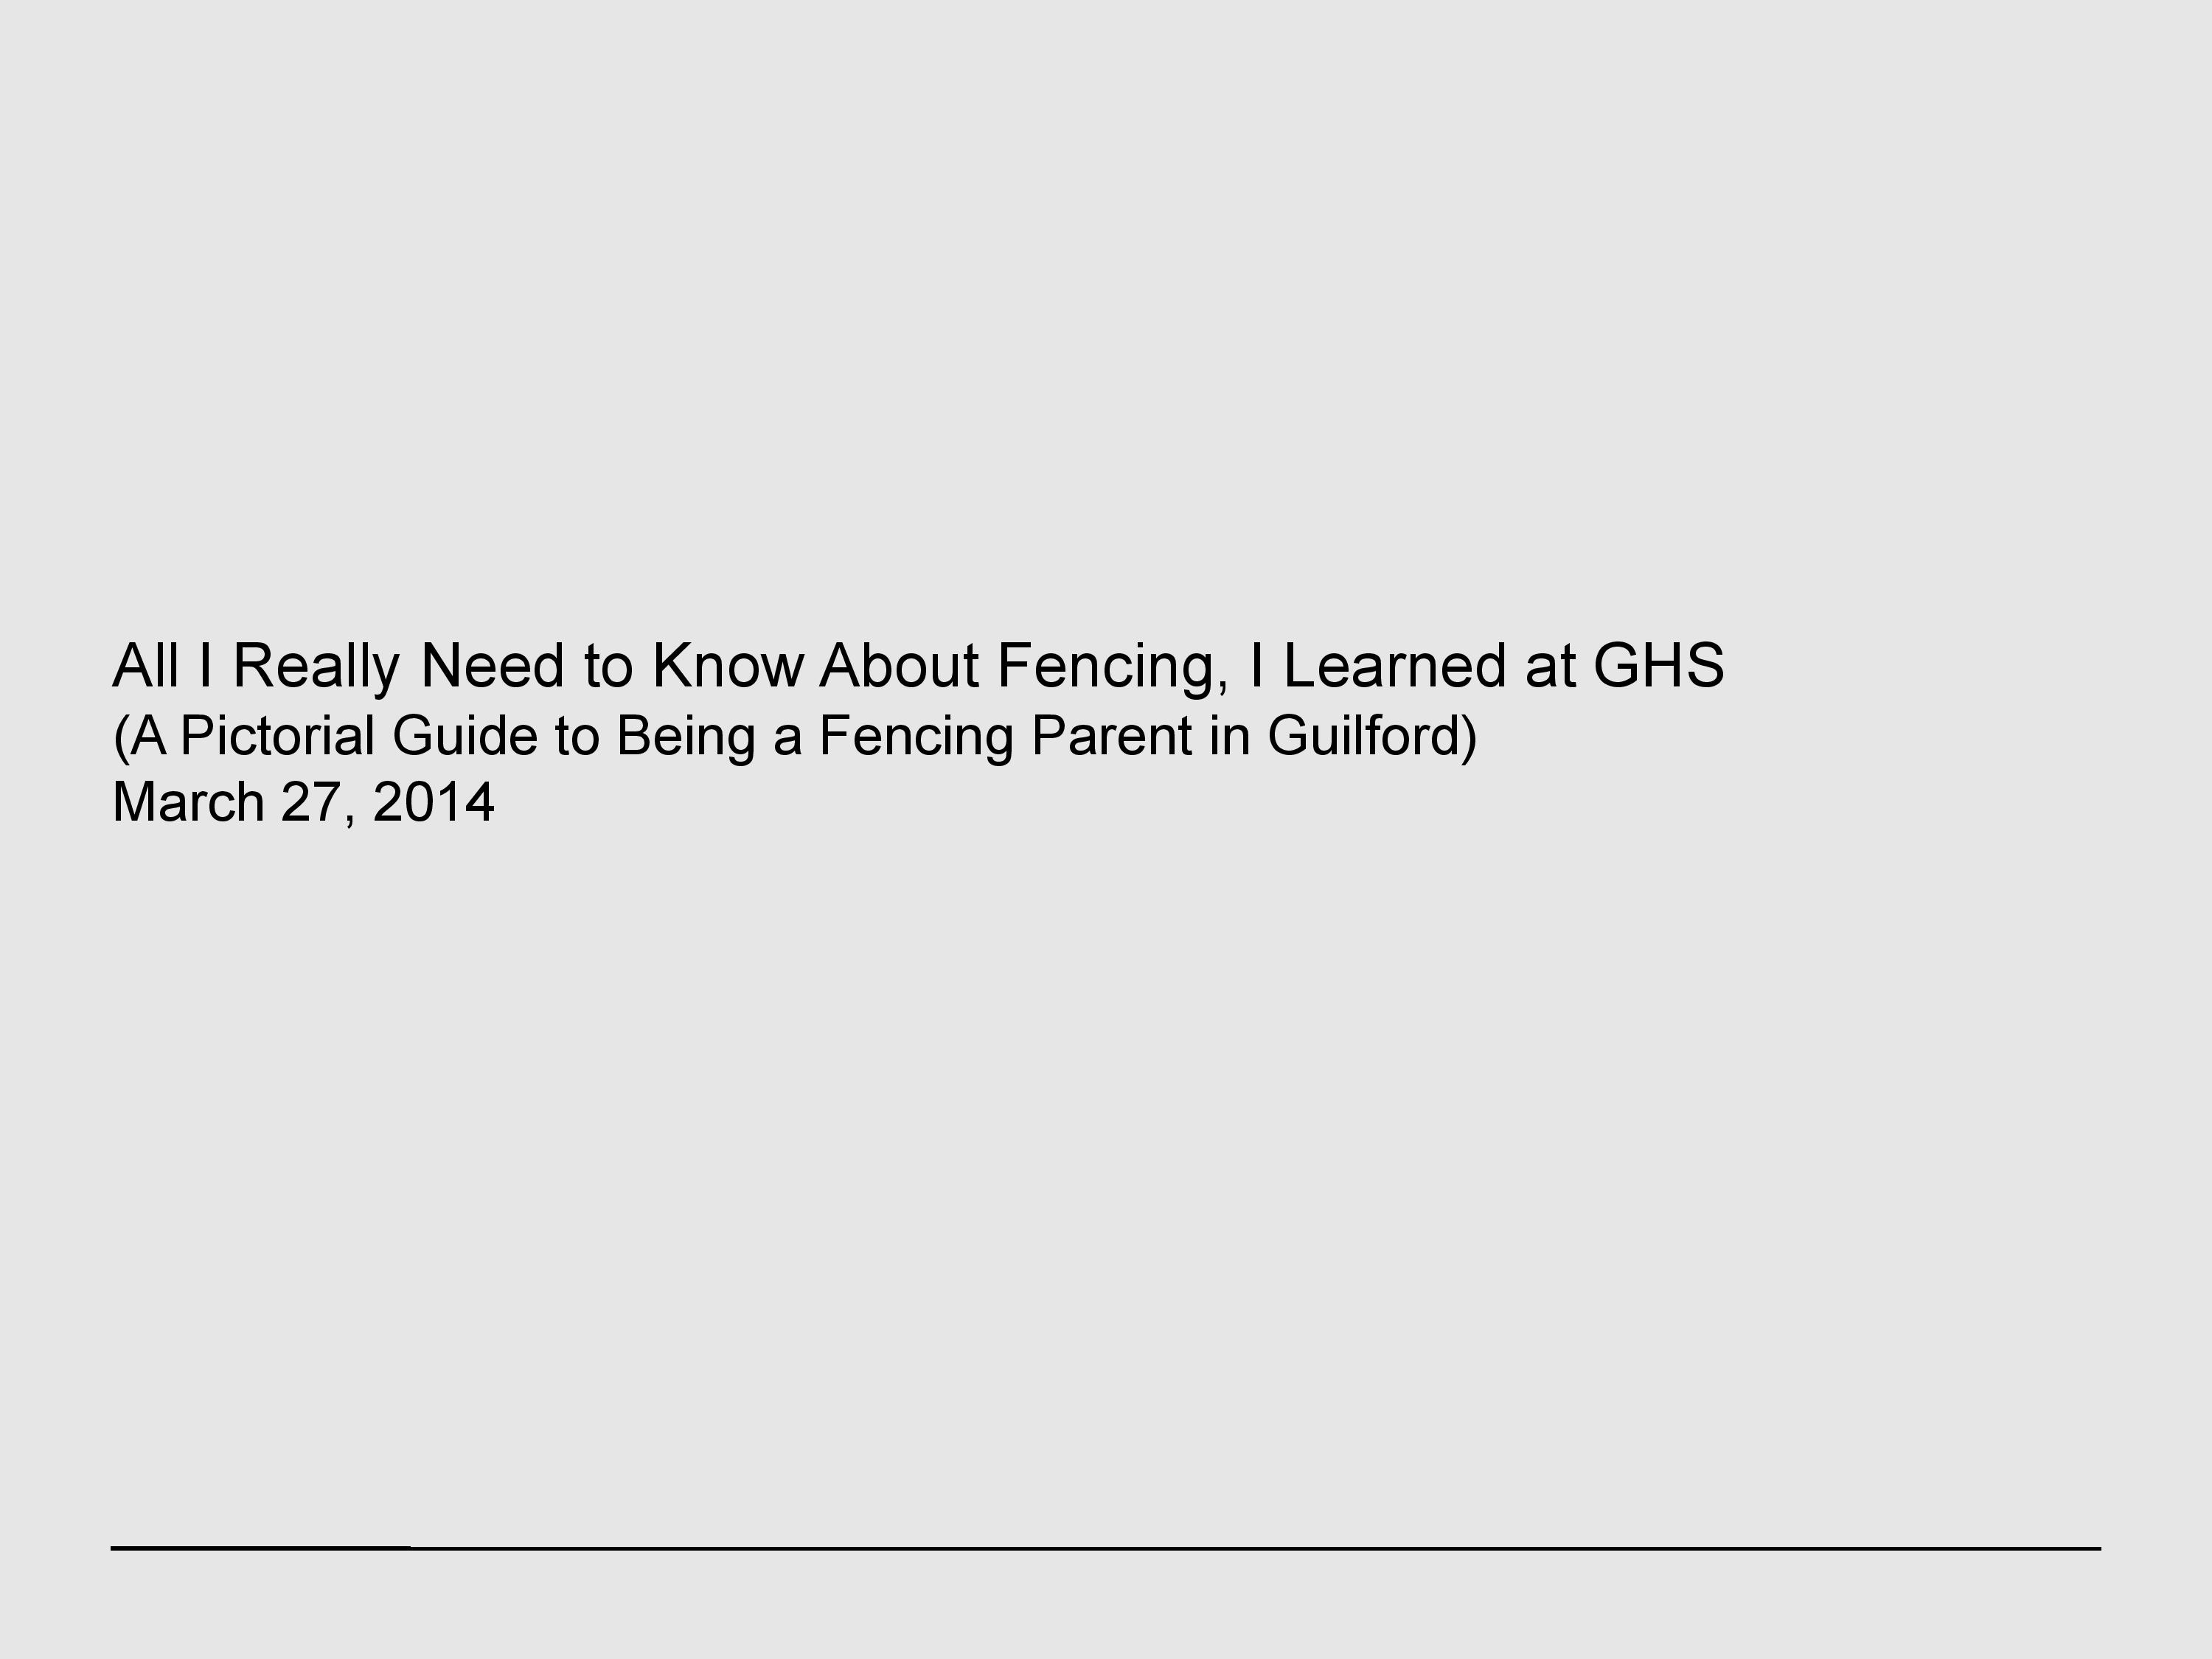 ParentsGuideToFencing2014 (1)-page-001